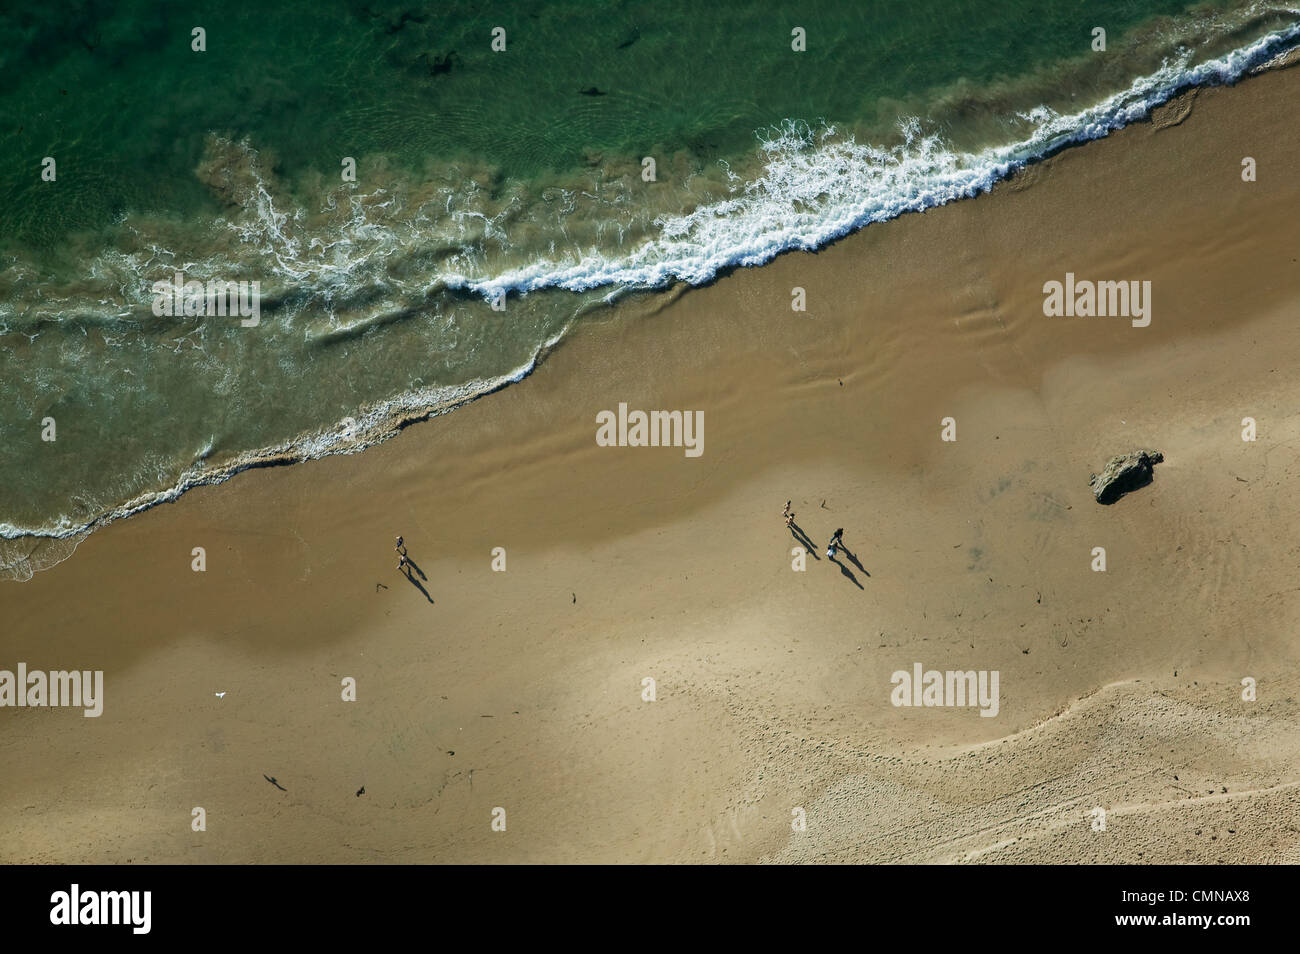 Aerial Photography People Walking On California Beach